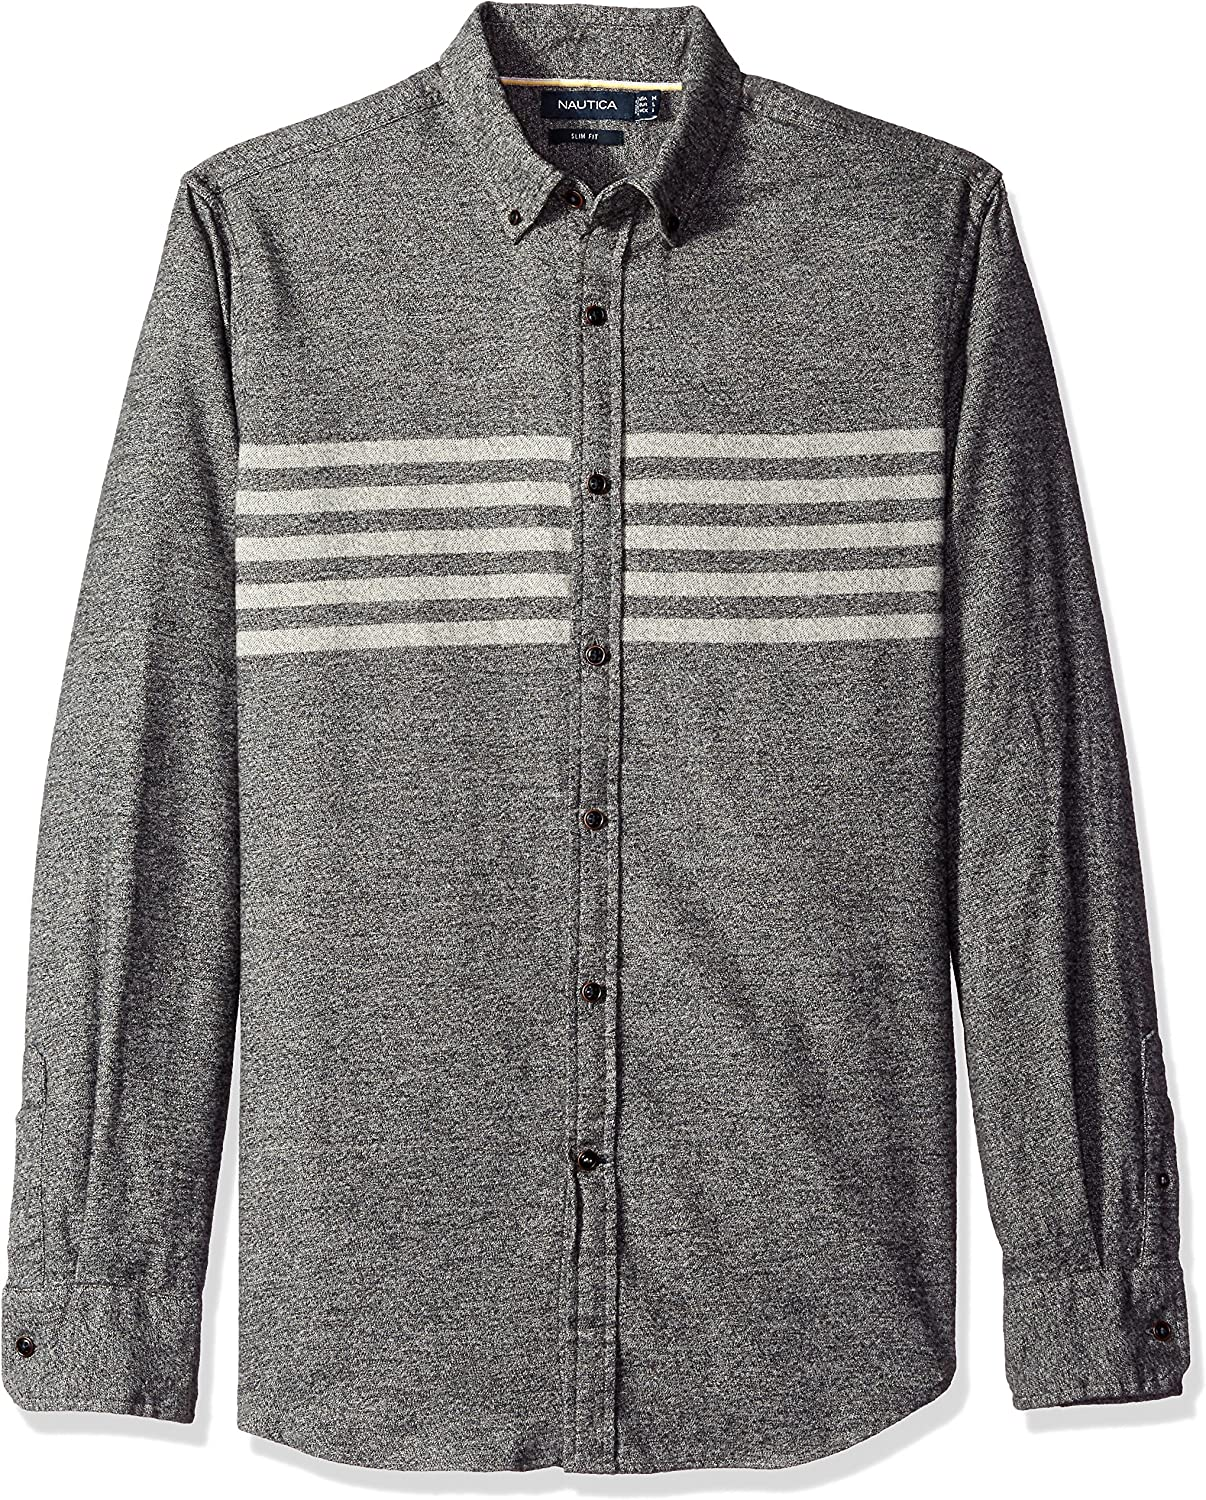 Clearance SALE! Limited time! Nautica Men's Slim Max 84% OFF Fit Moleskin Chest Striped Shirt